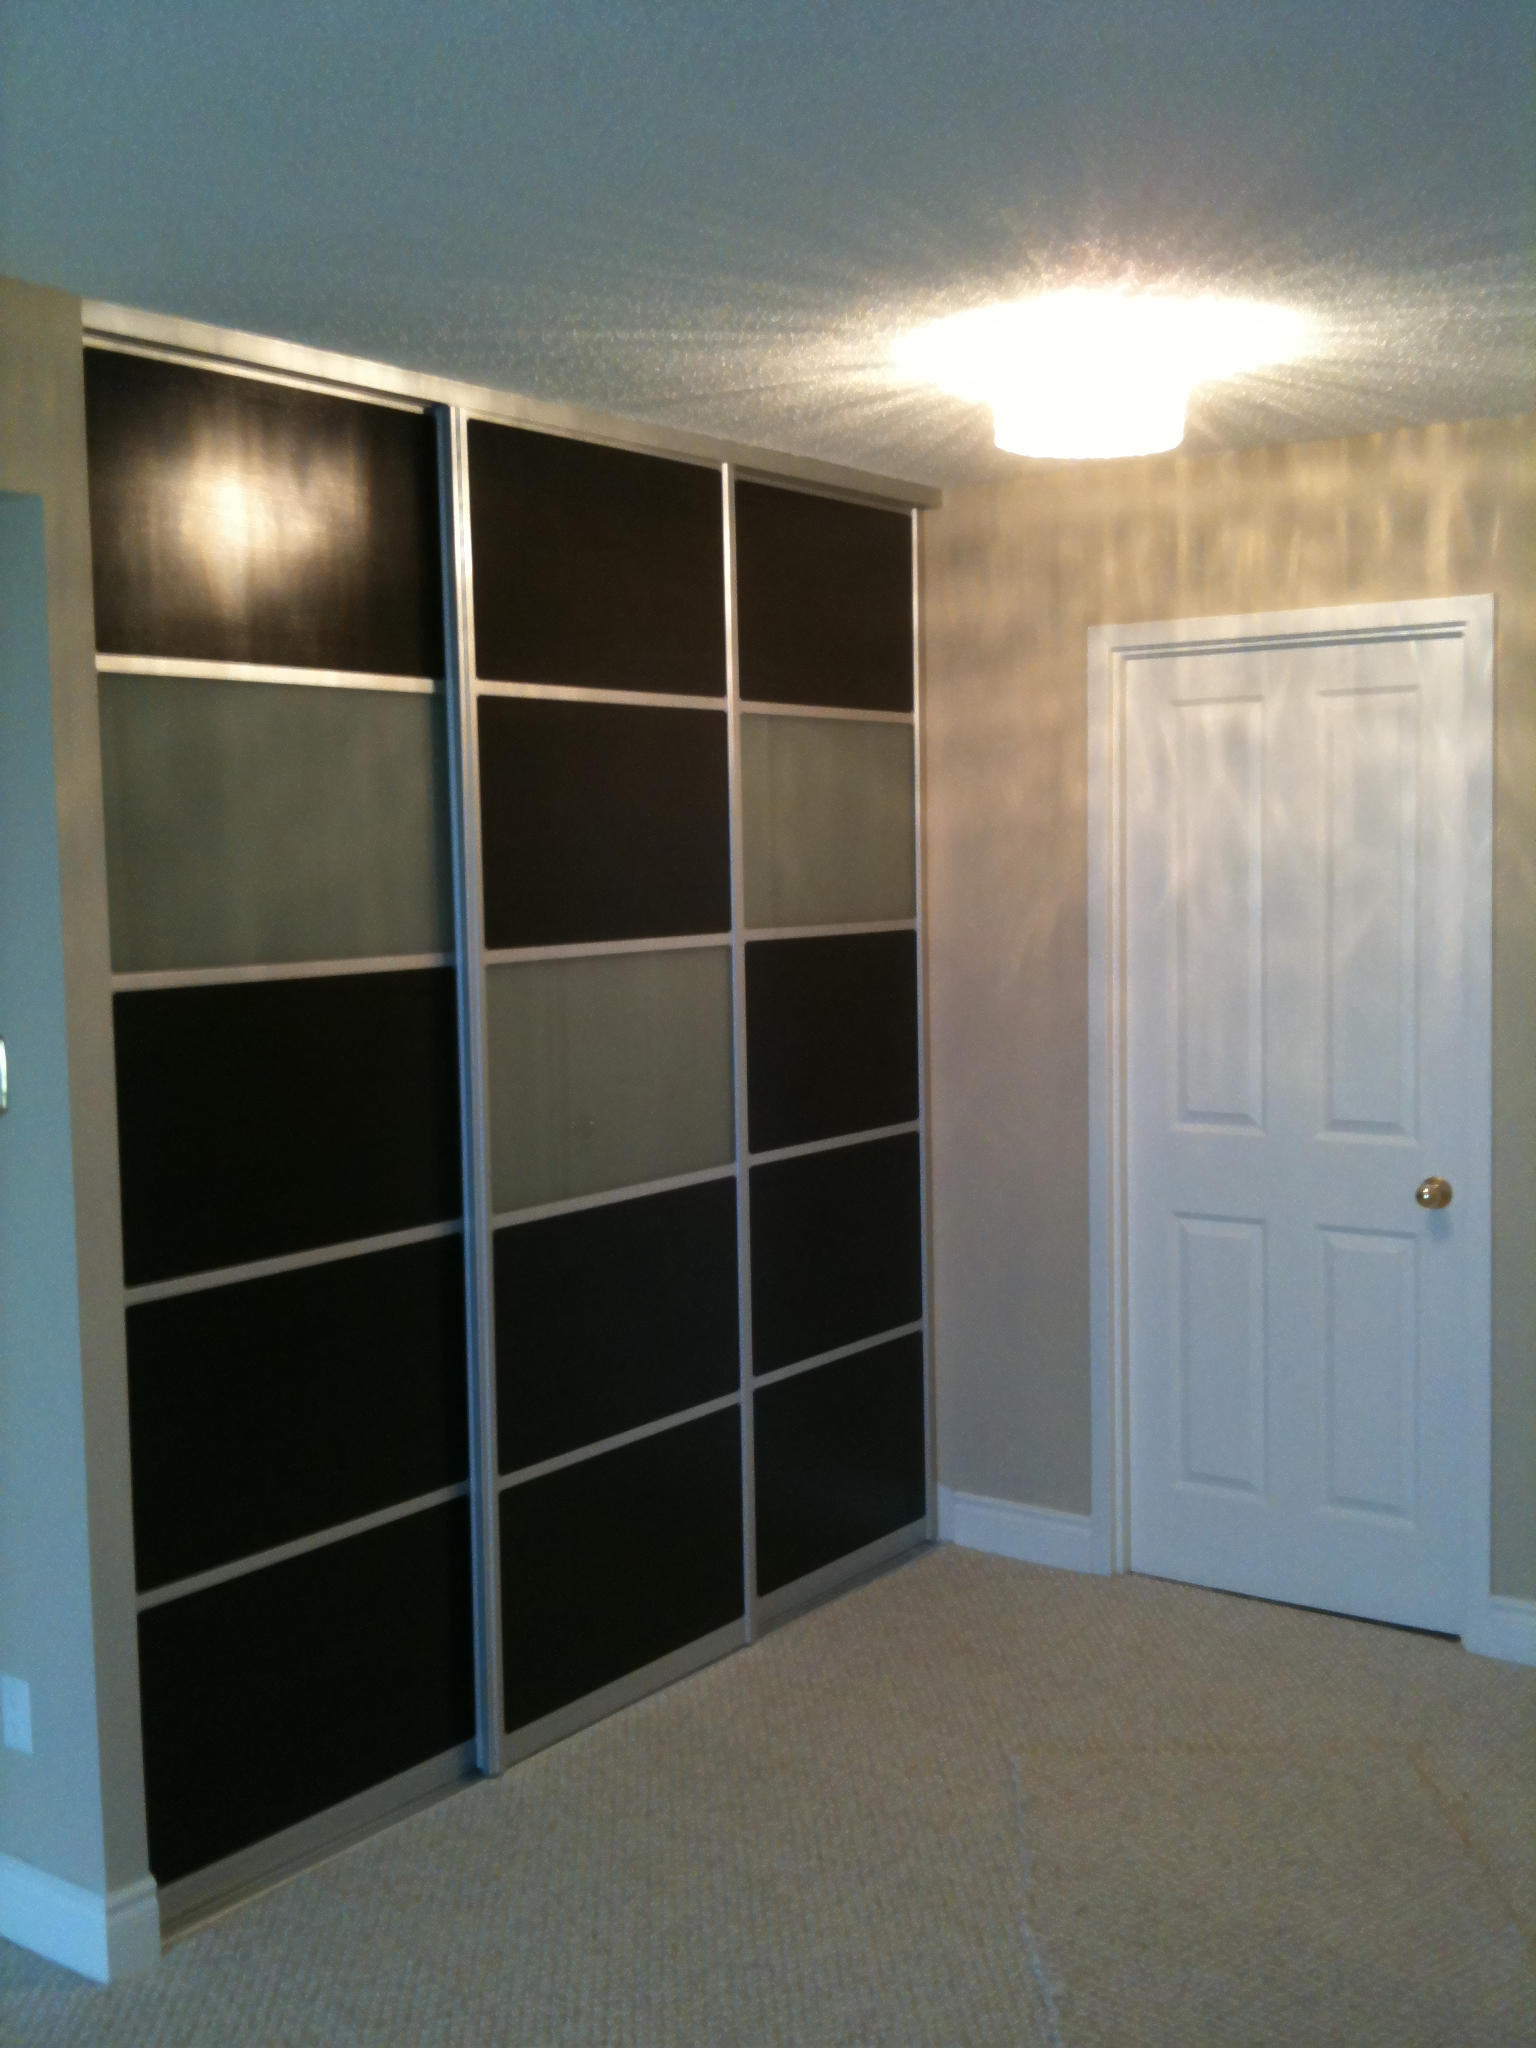 8 Ft X 8 Ft Unique Closet Door